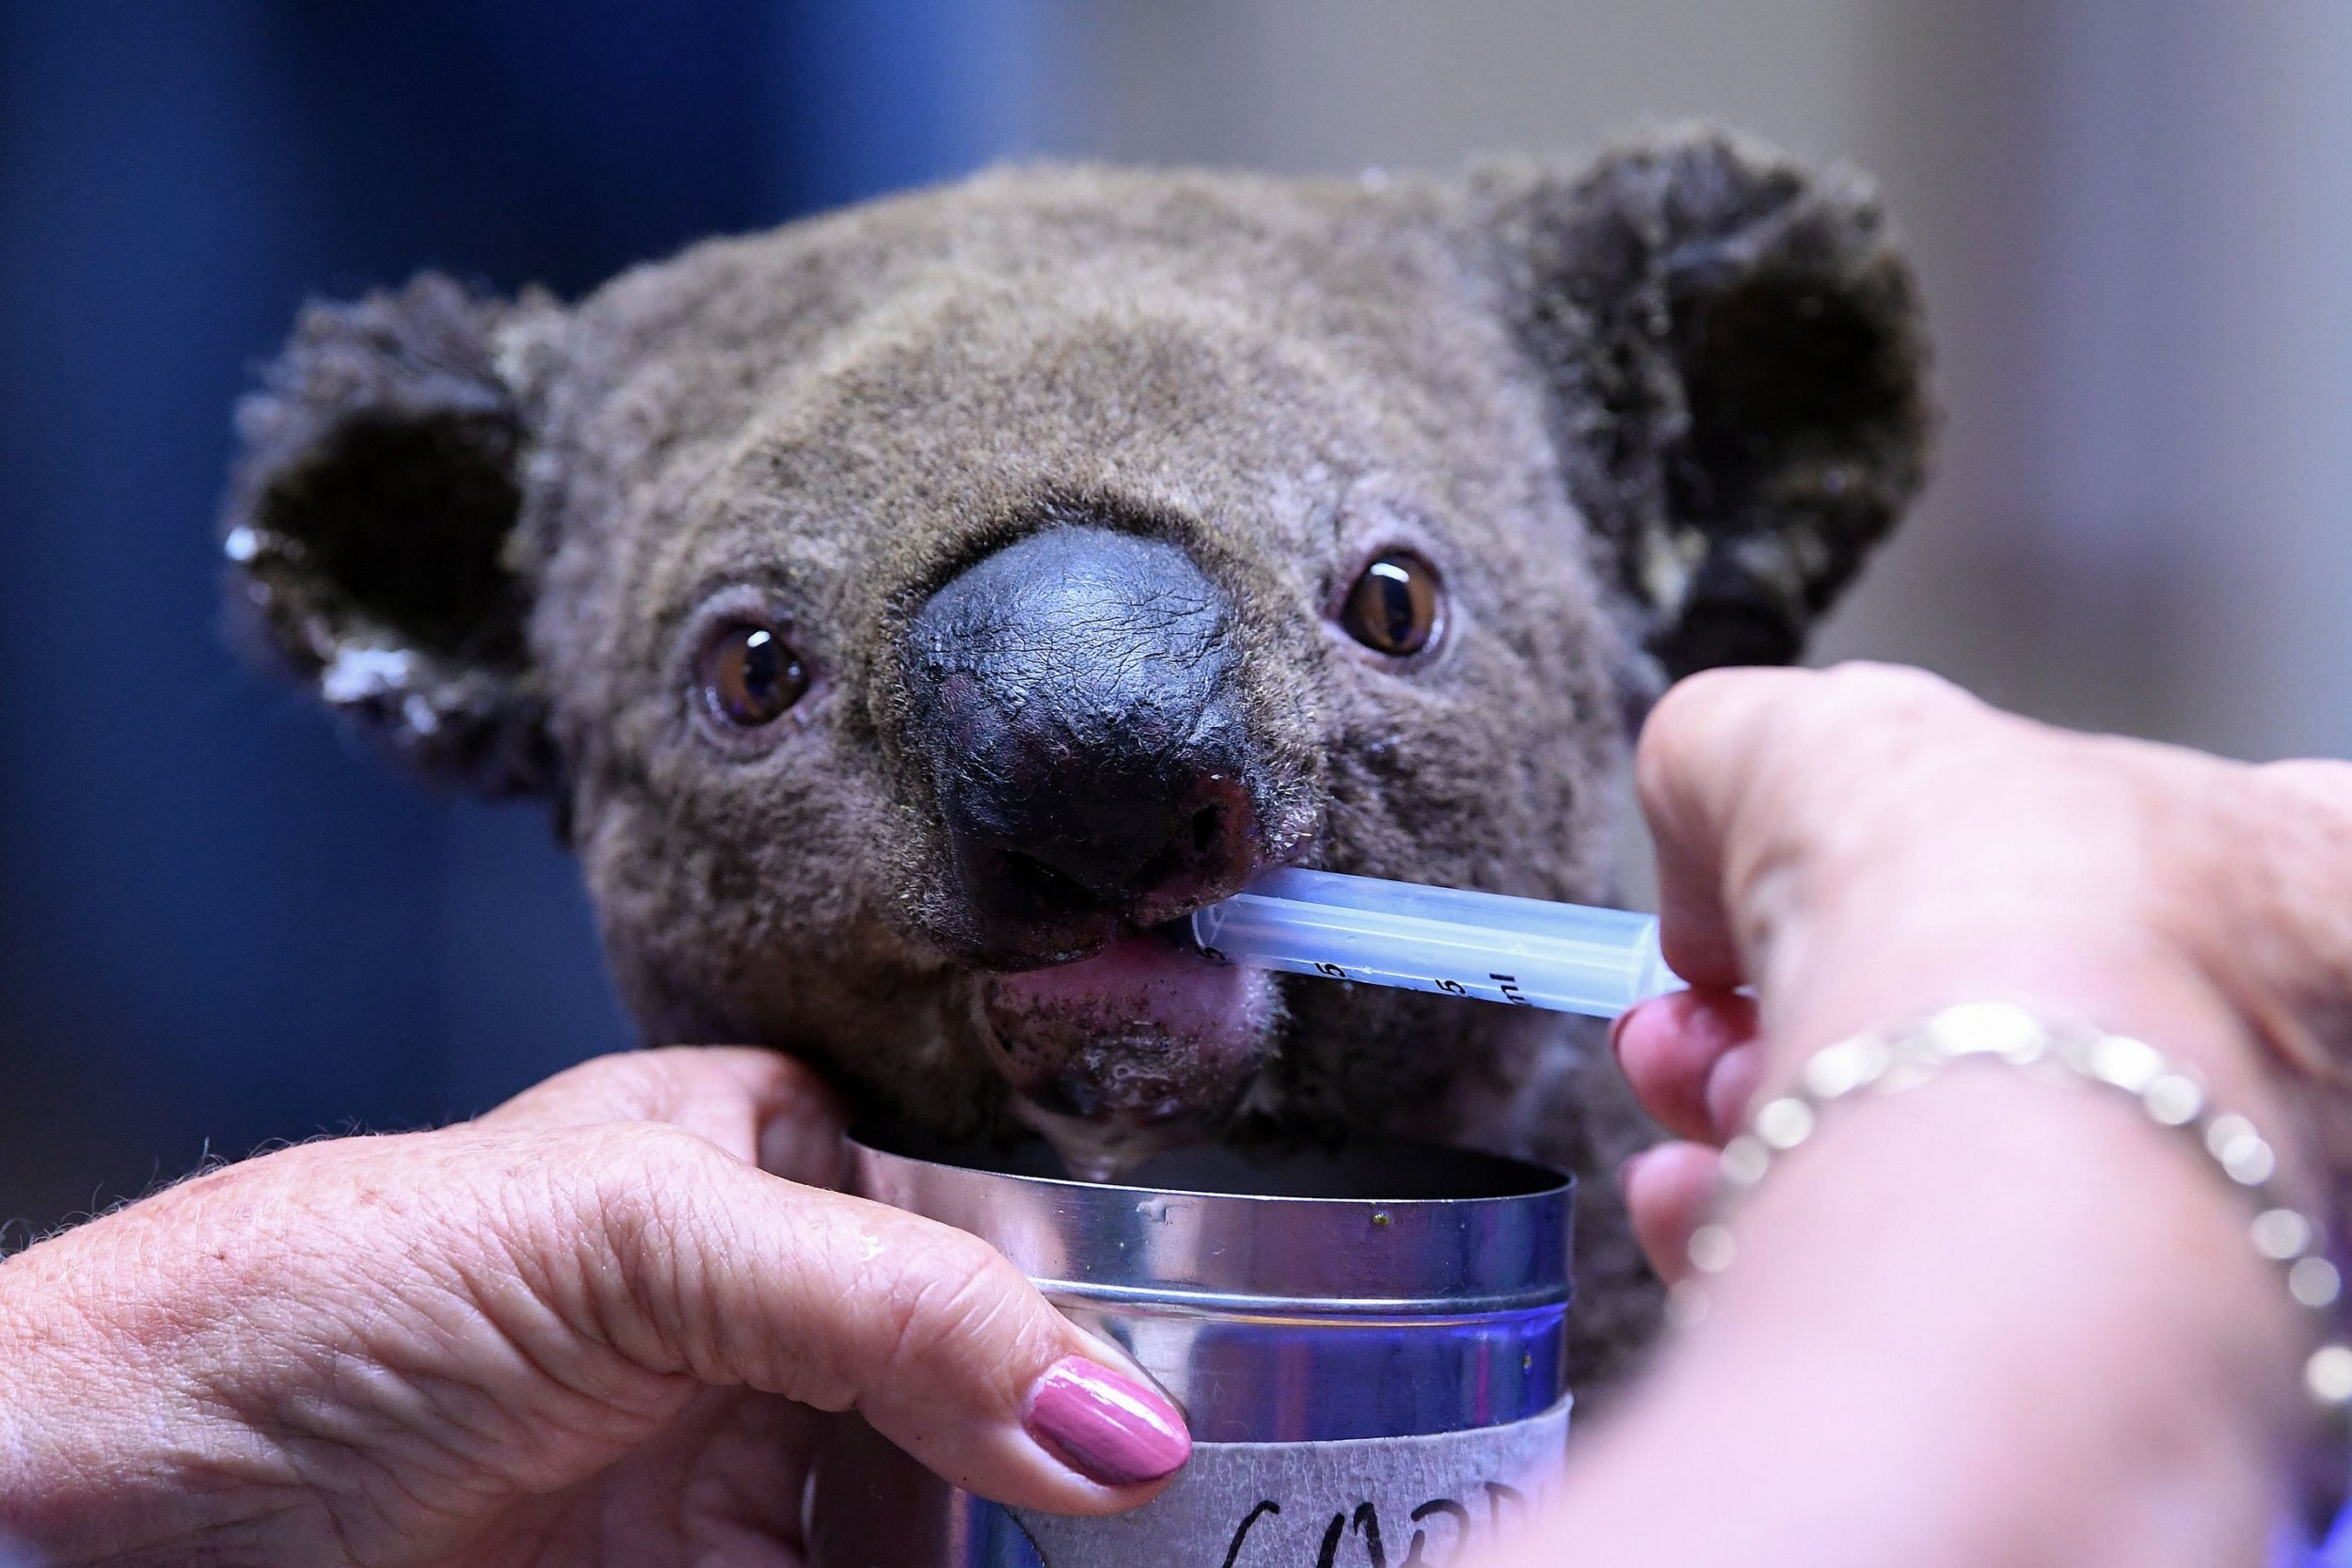 Australian bushfires wipe out half of koala colony